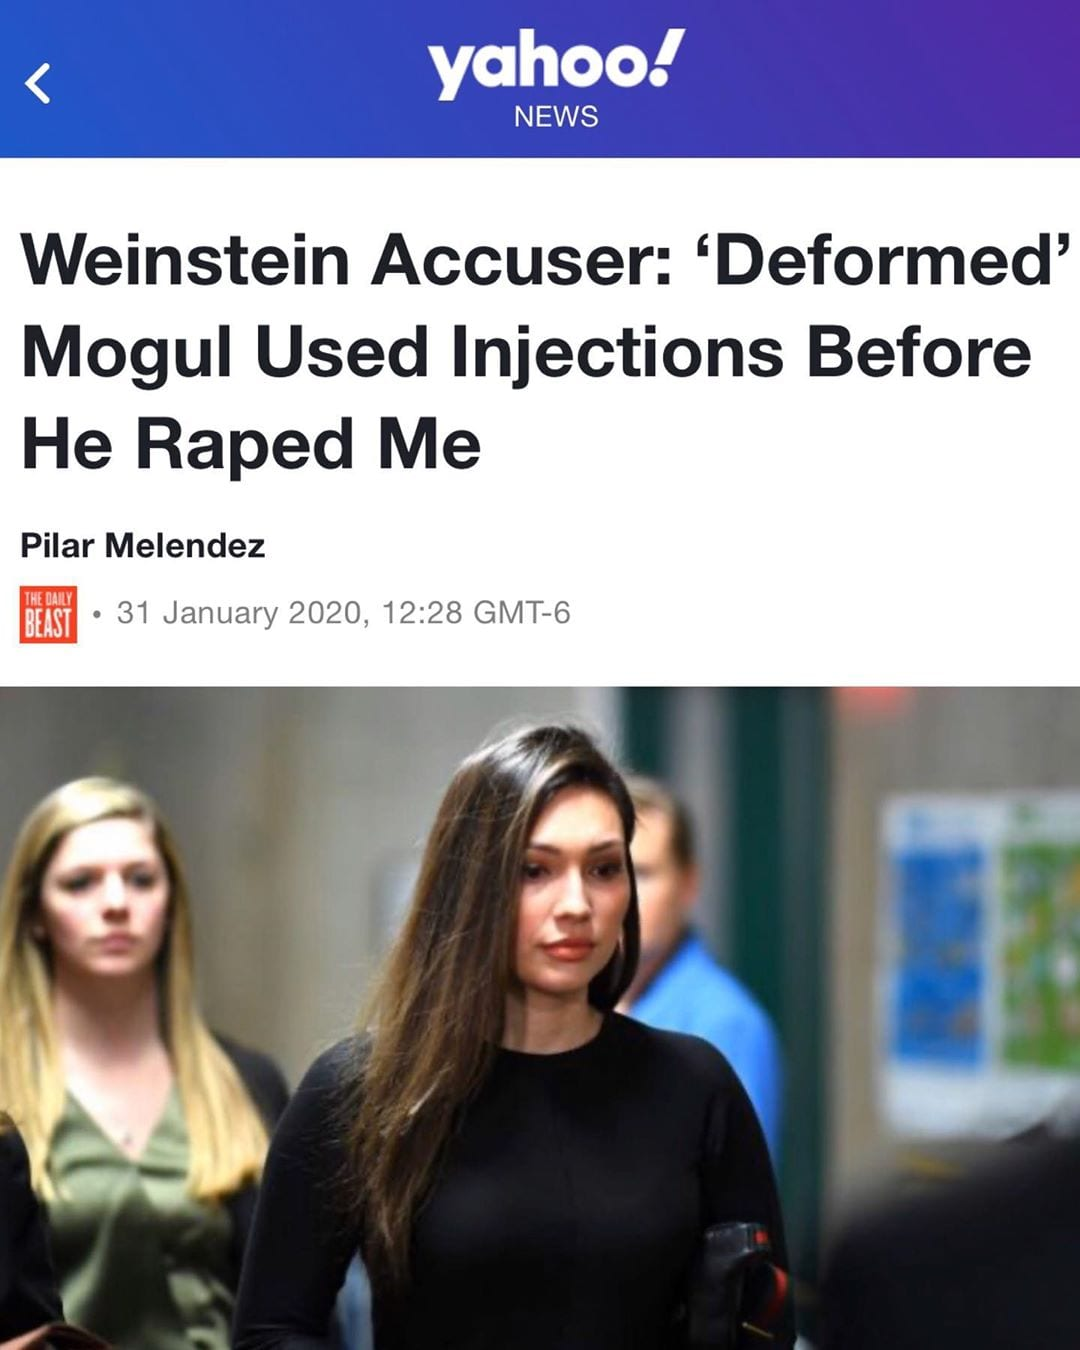 Weinstein Accuser: 'Deformed' Mogul Used Injections Before He Raped Me